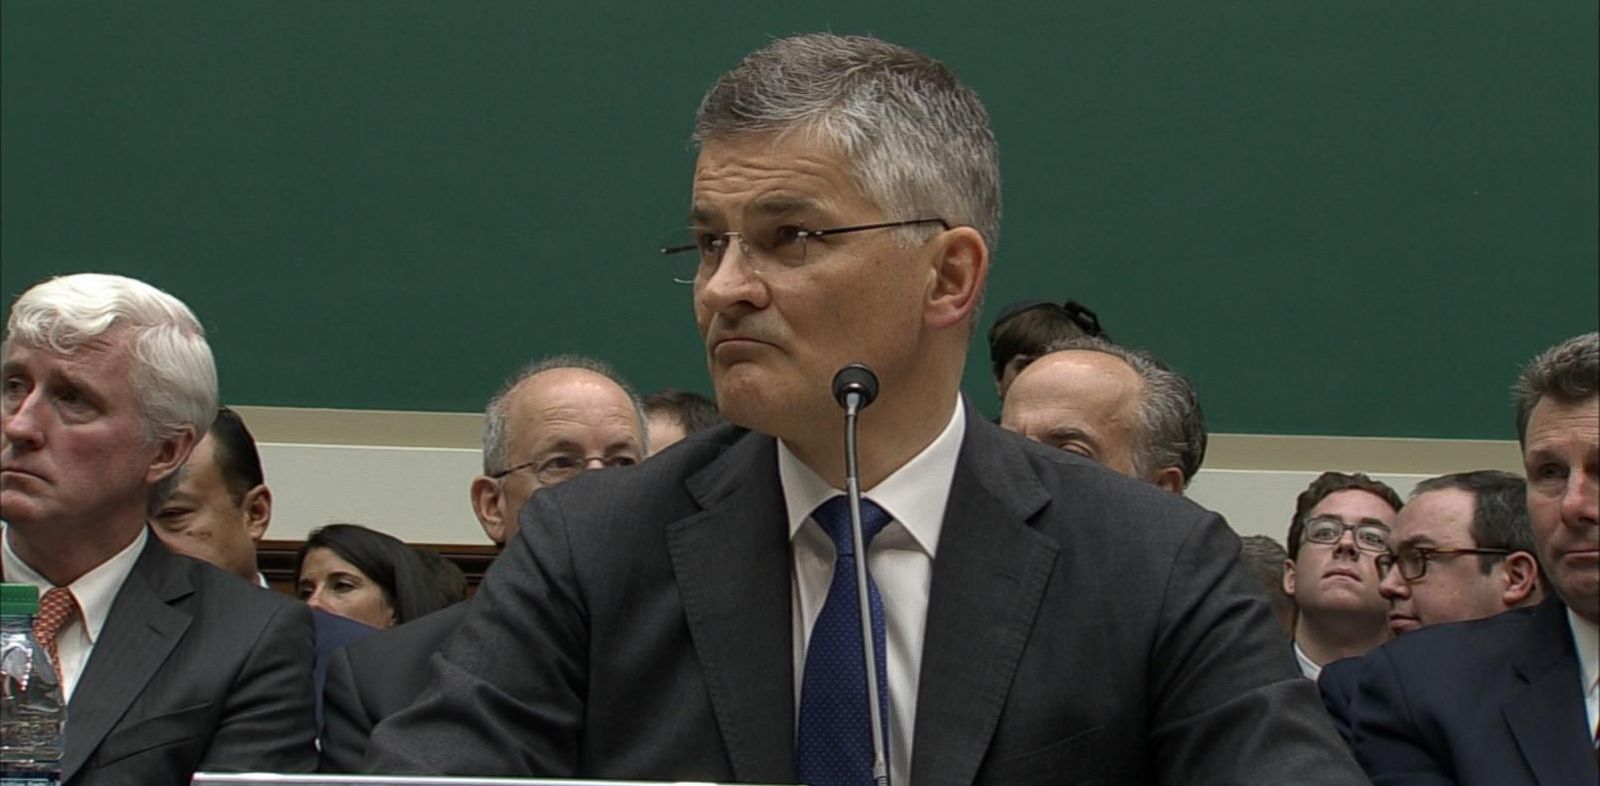 VIDEO: Michael Horn, president and CEO of Volkswagen Group of America, addressed heated questions from lawmakers about the company's emissions scandal.